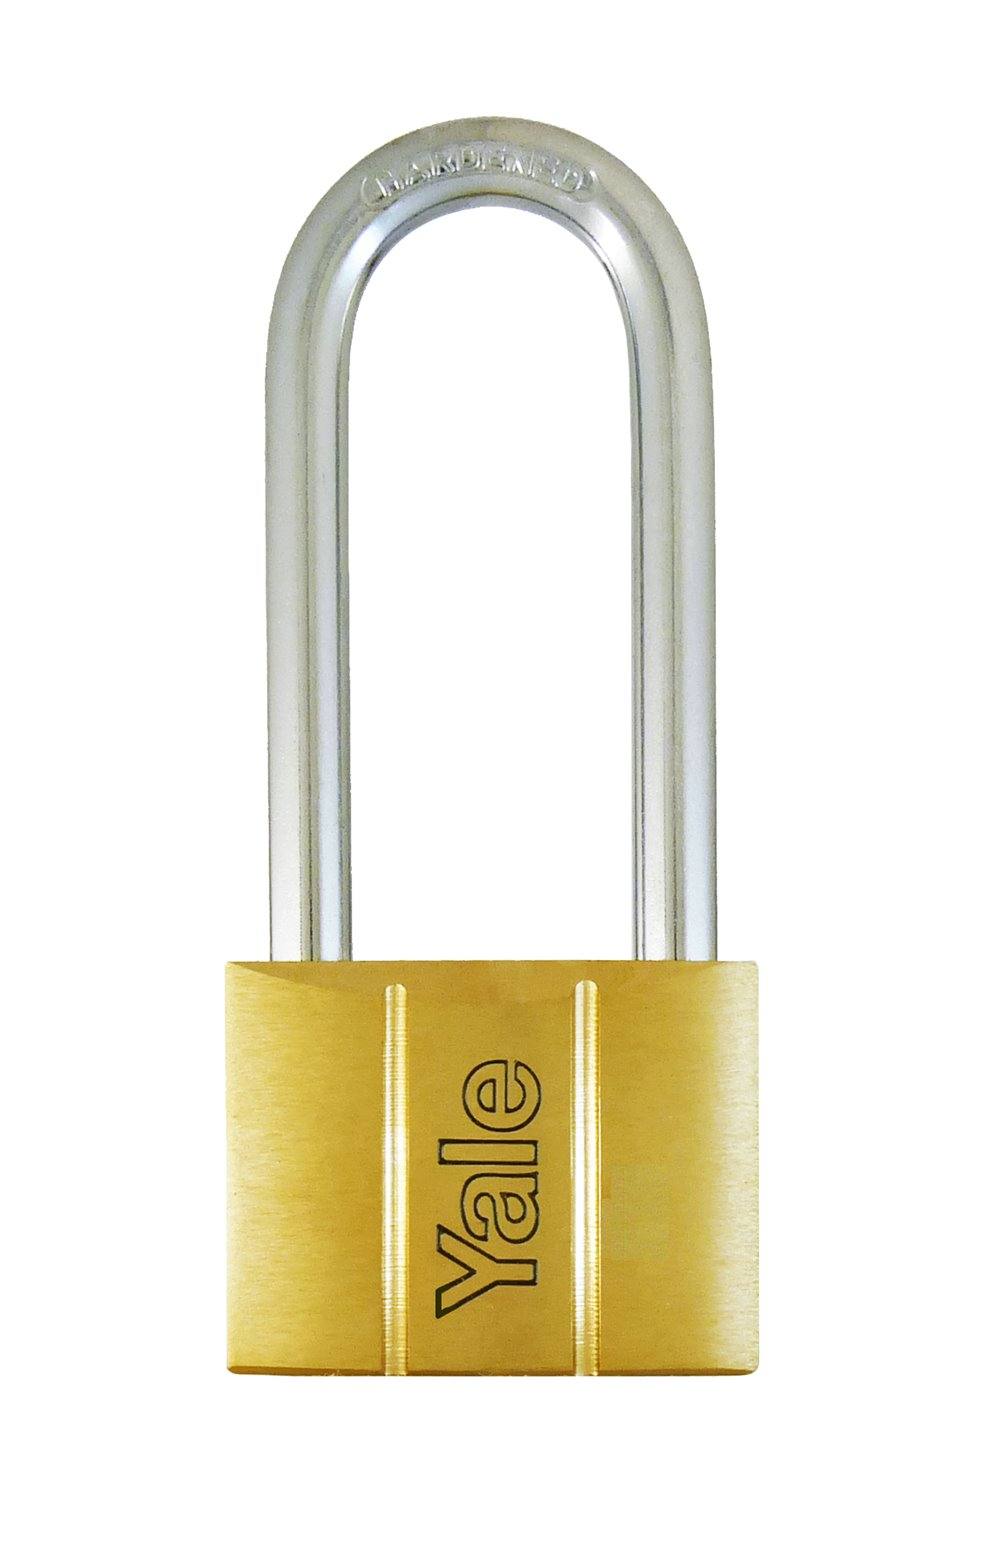 Y140/50LS - Yale 140 Series Long Shackle Brass Padlock 50mm